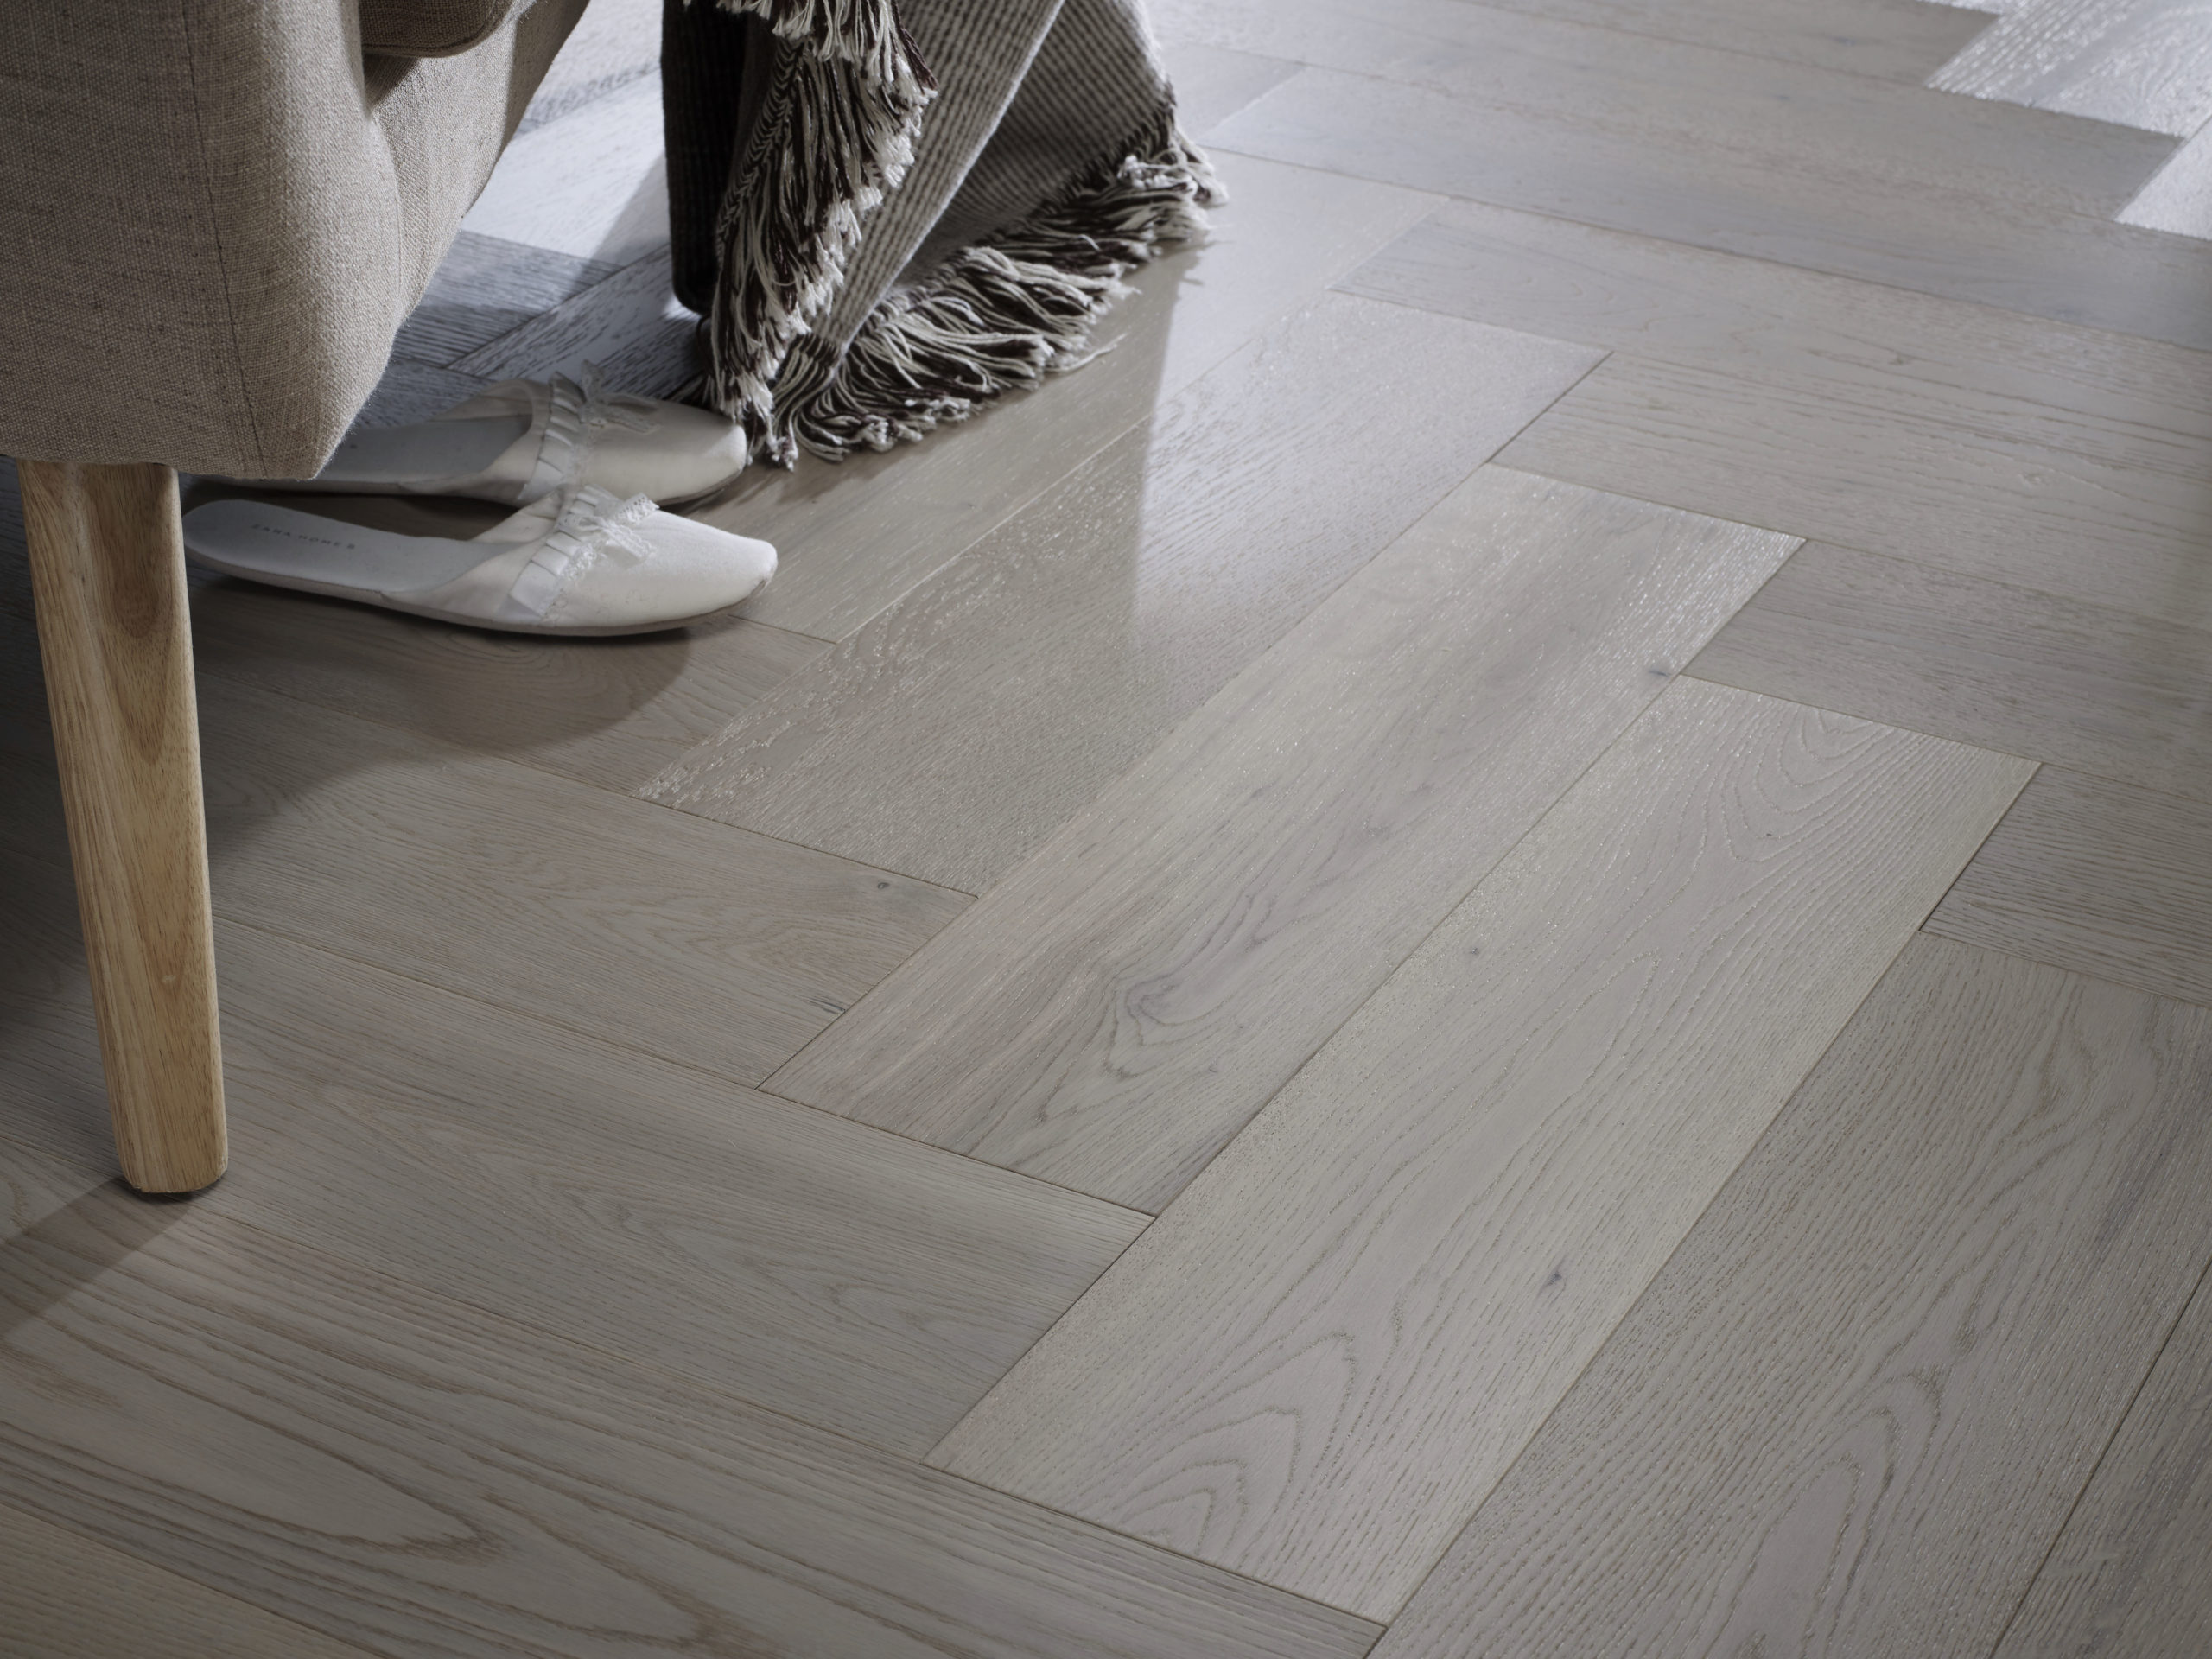 Riviera Herringbone Click 14/3 x 150mm Grey Oak Engineered Wood